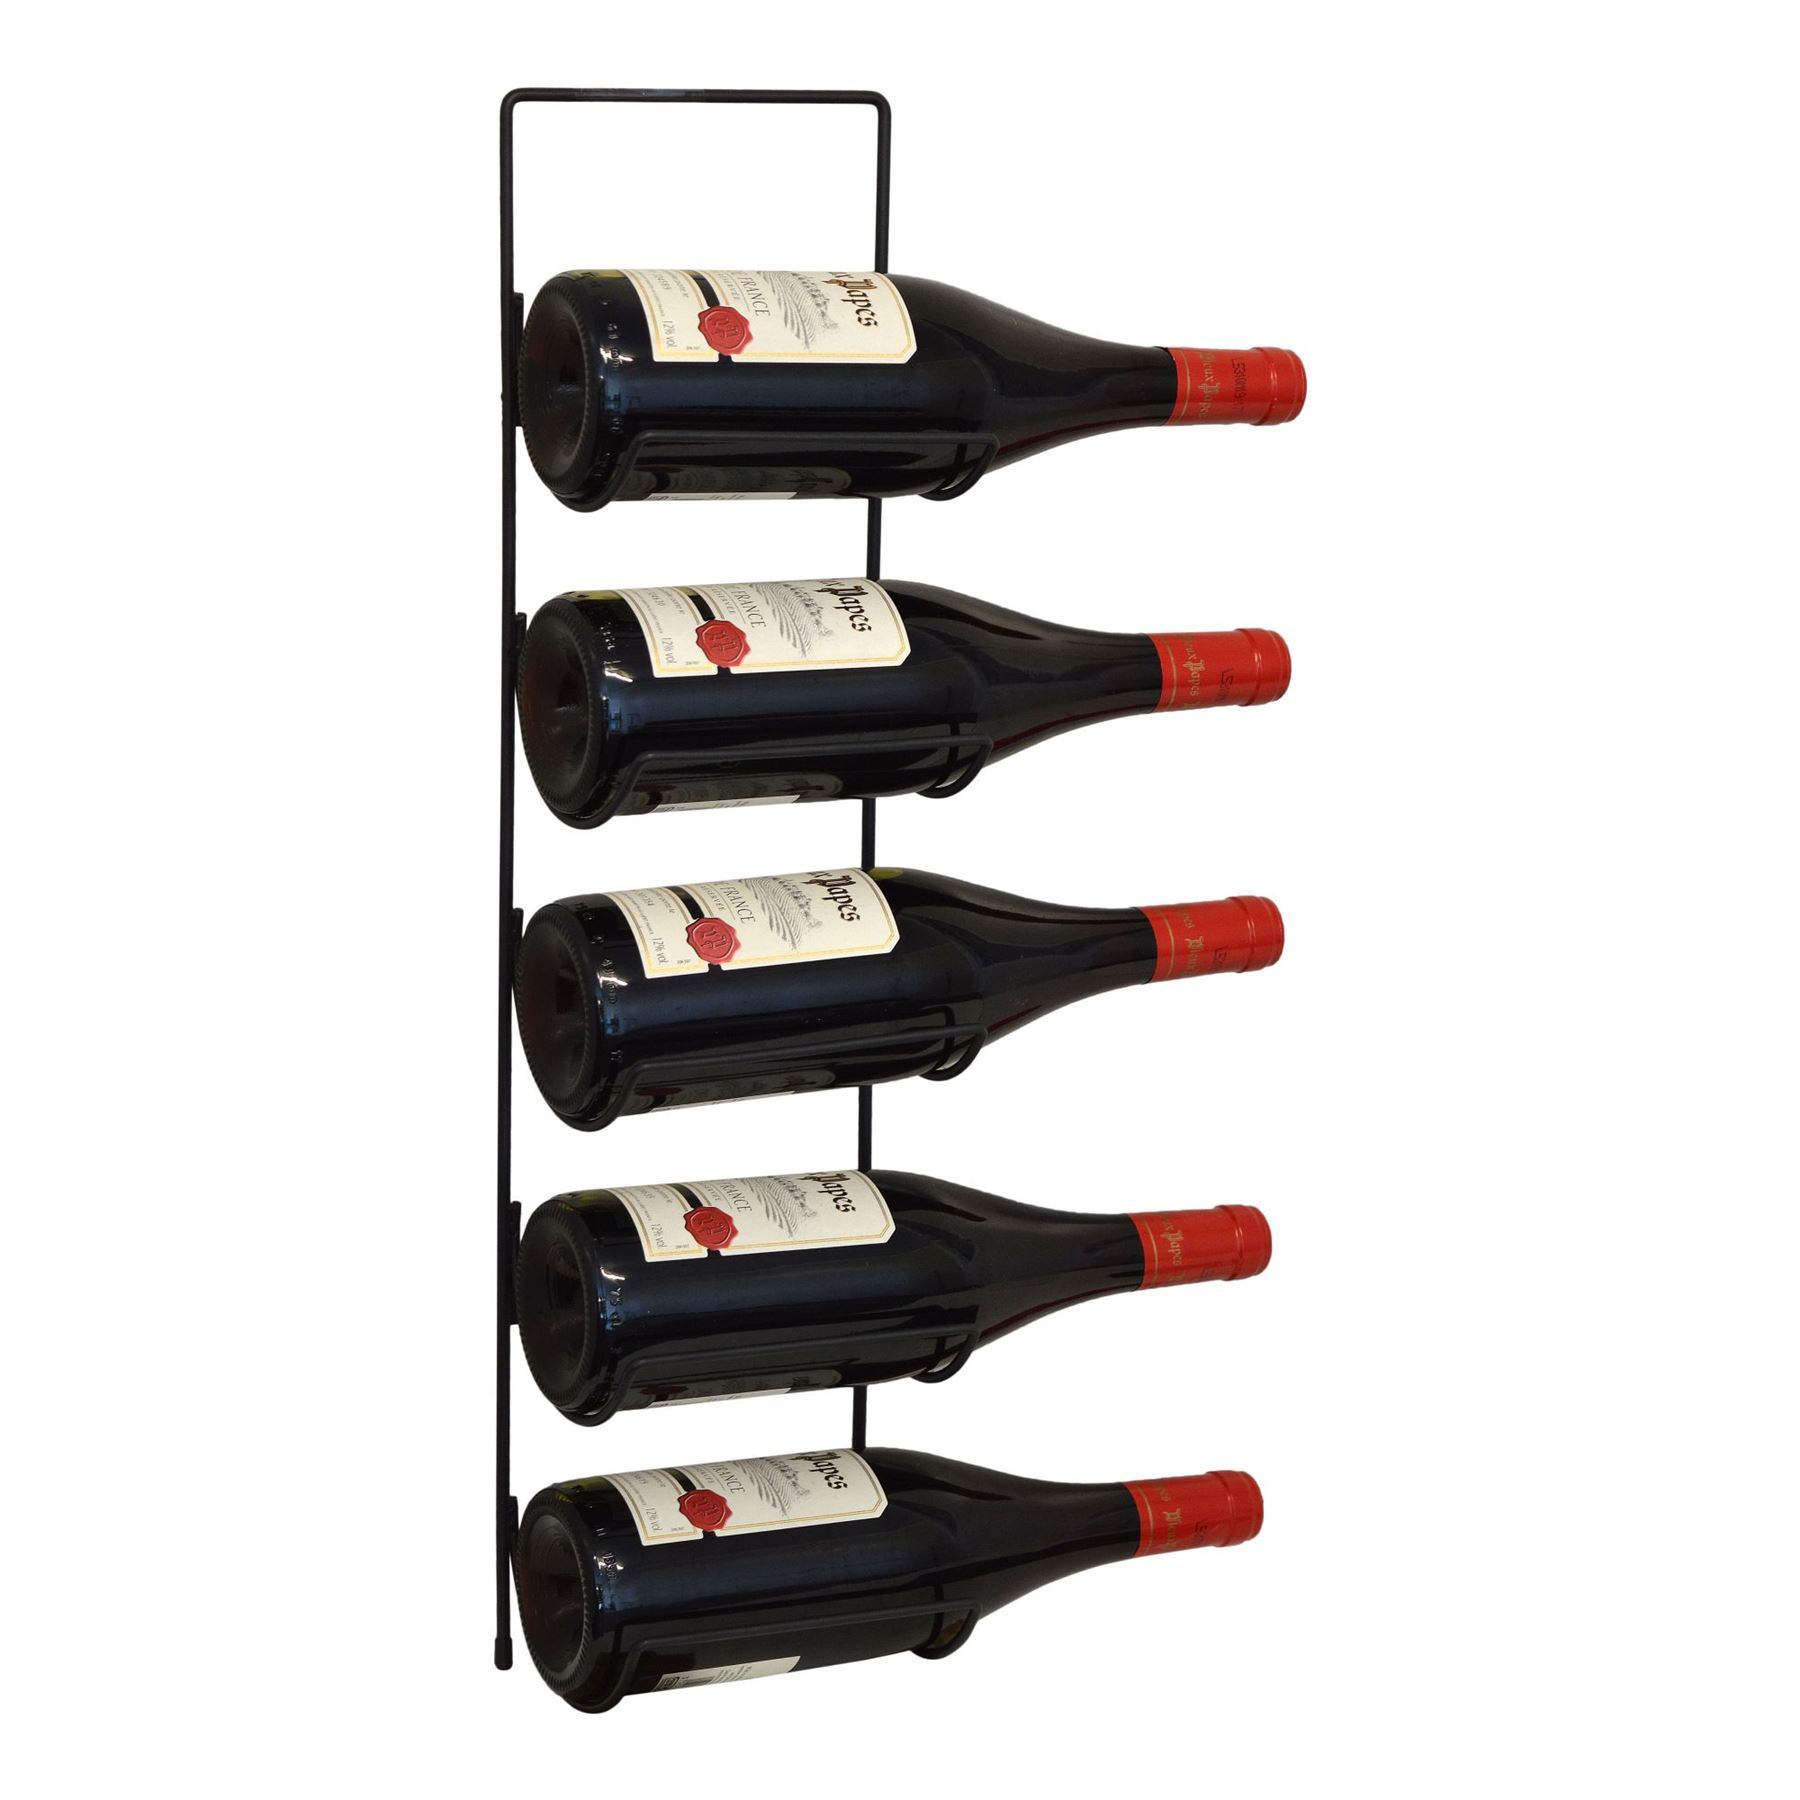 Harbour Housewares 5 Bottle Wall Mounted Black Metal Wine